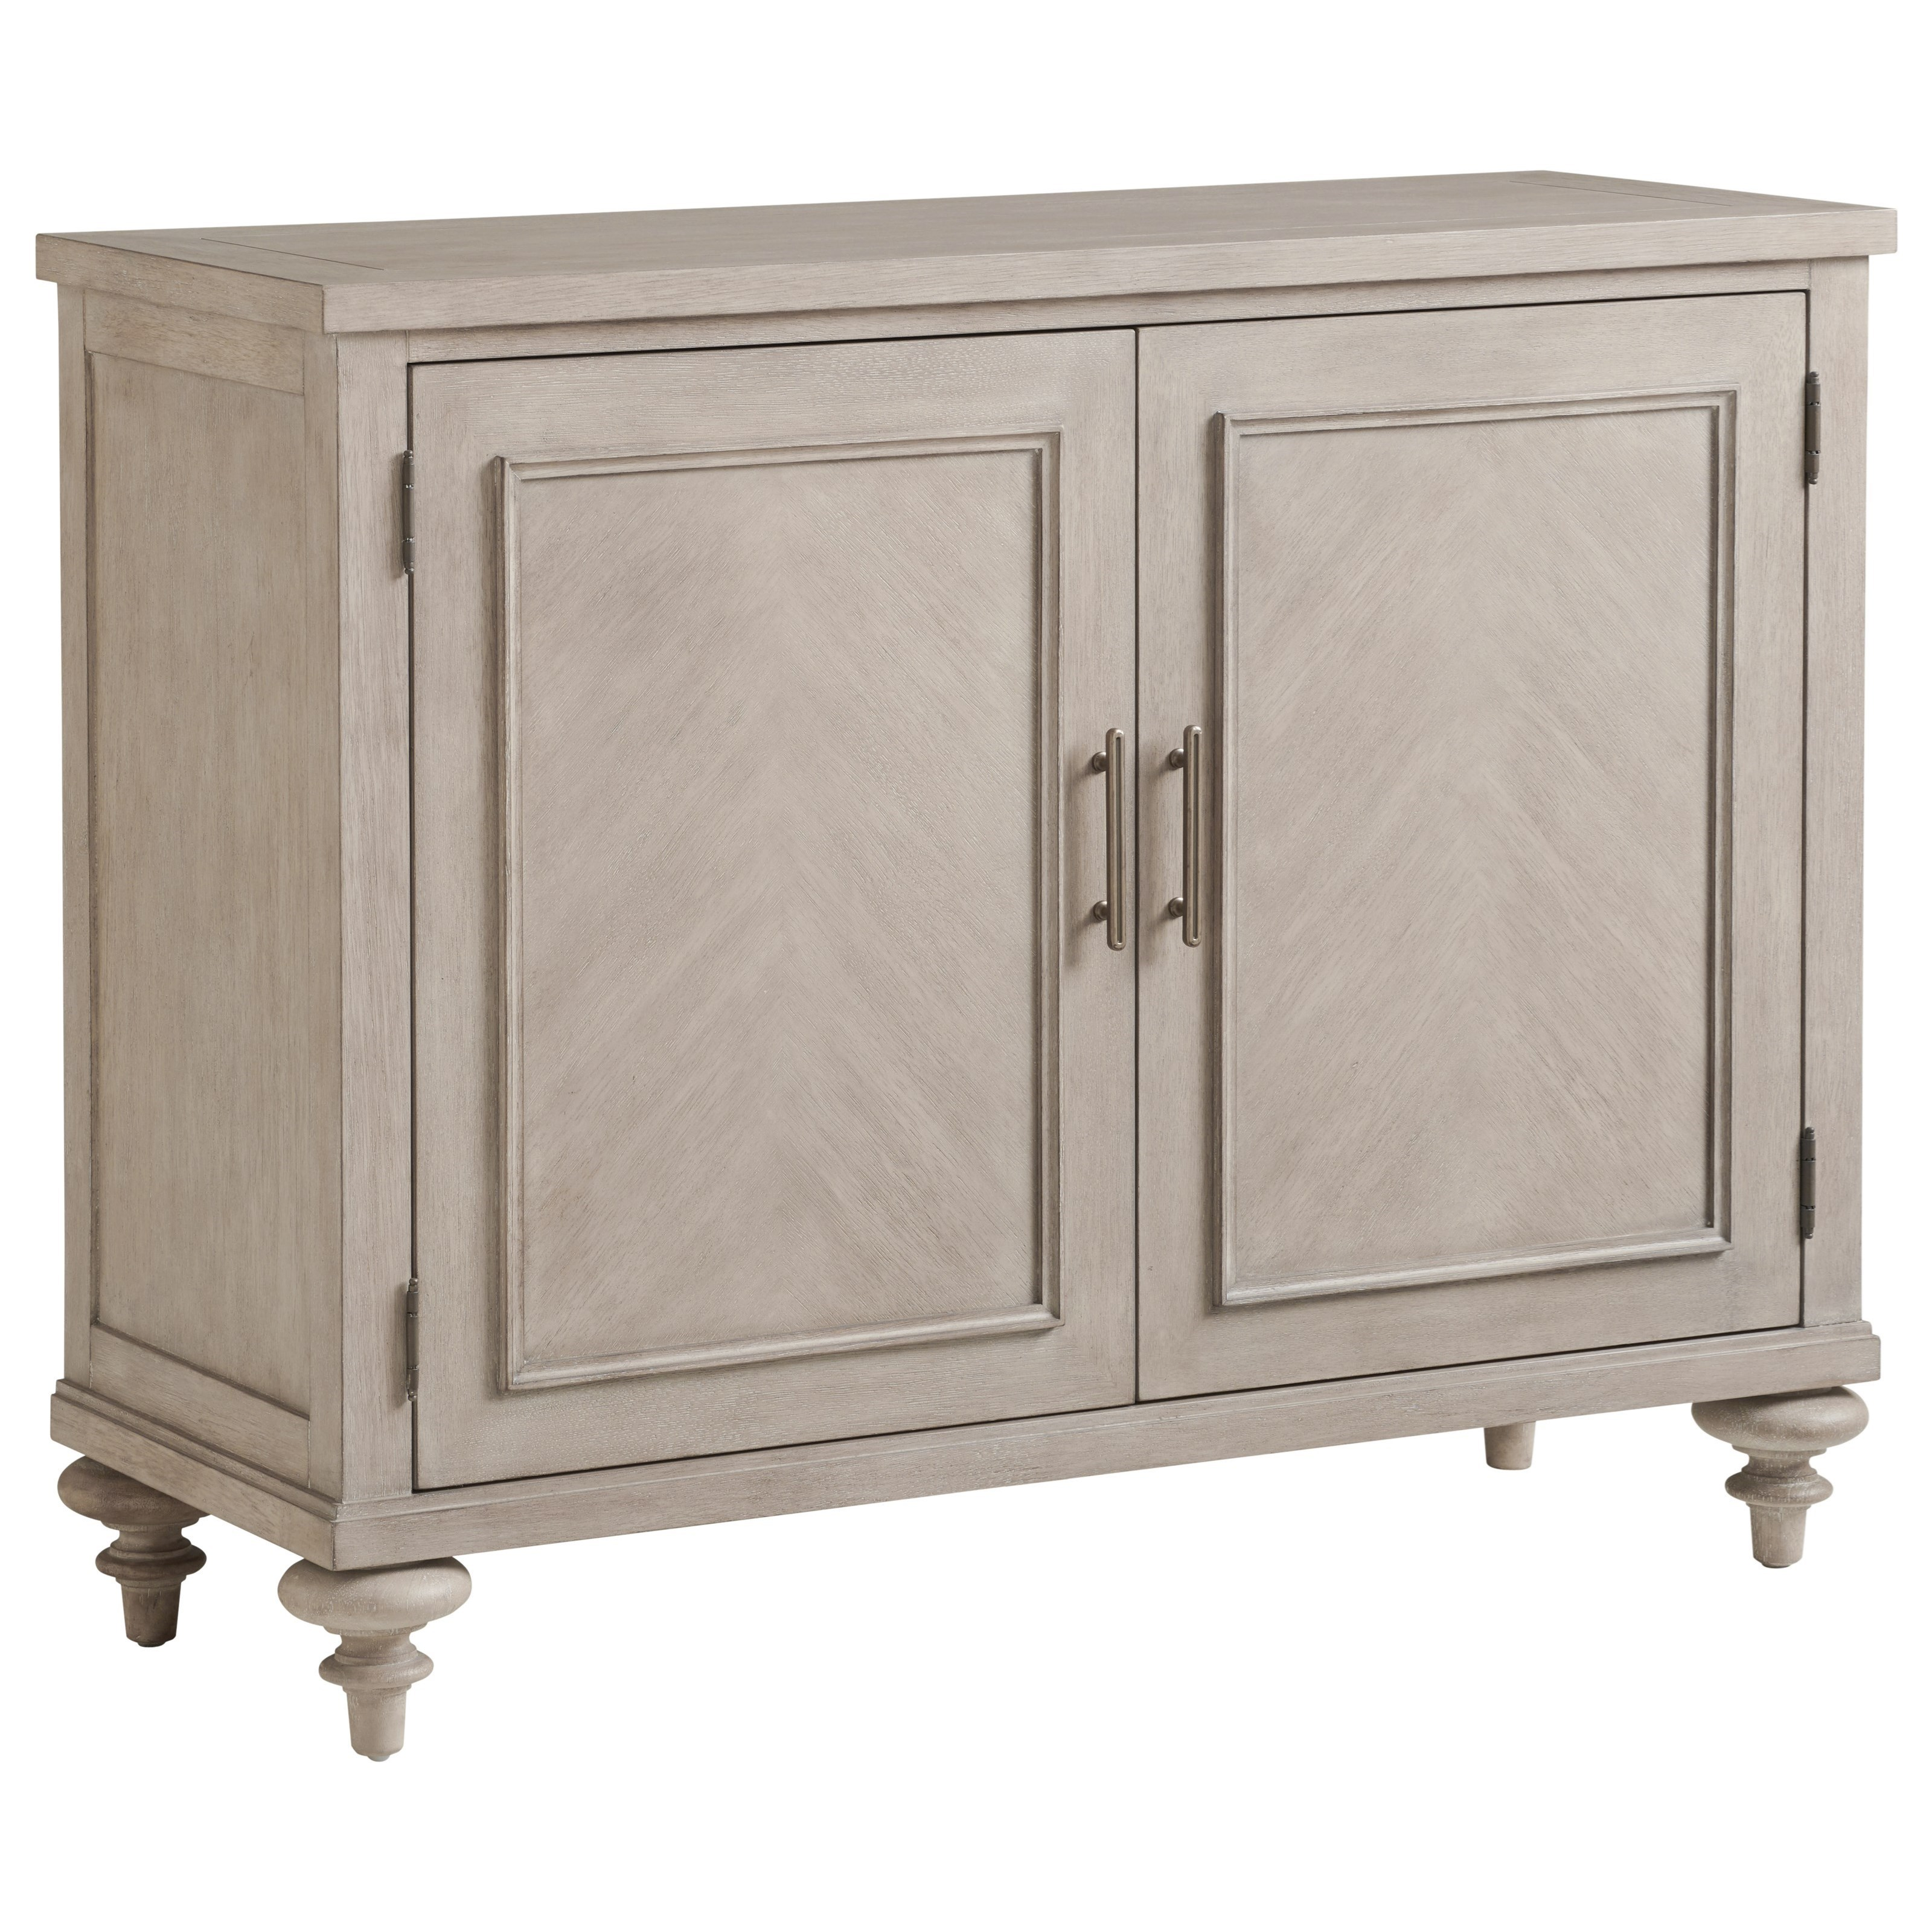 Malibu Neptune Hall Chest by Barclay Butera at Baer's Furniture